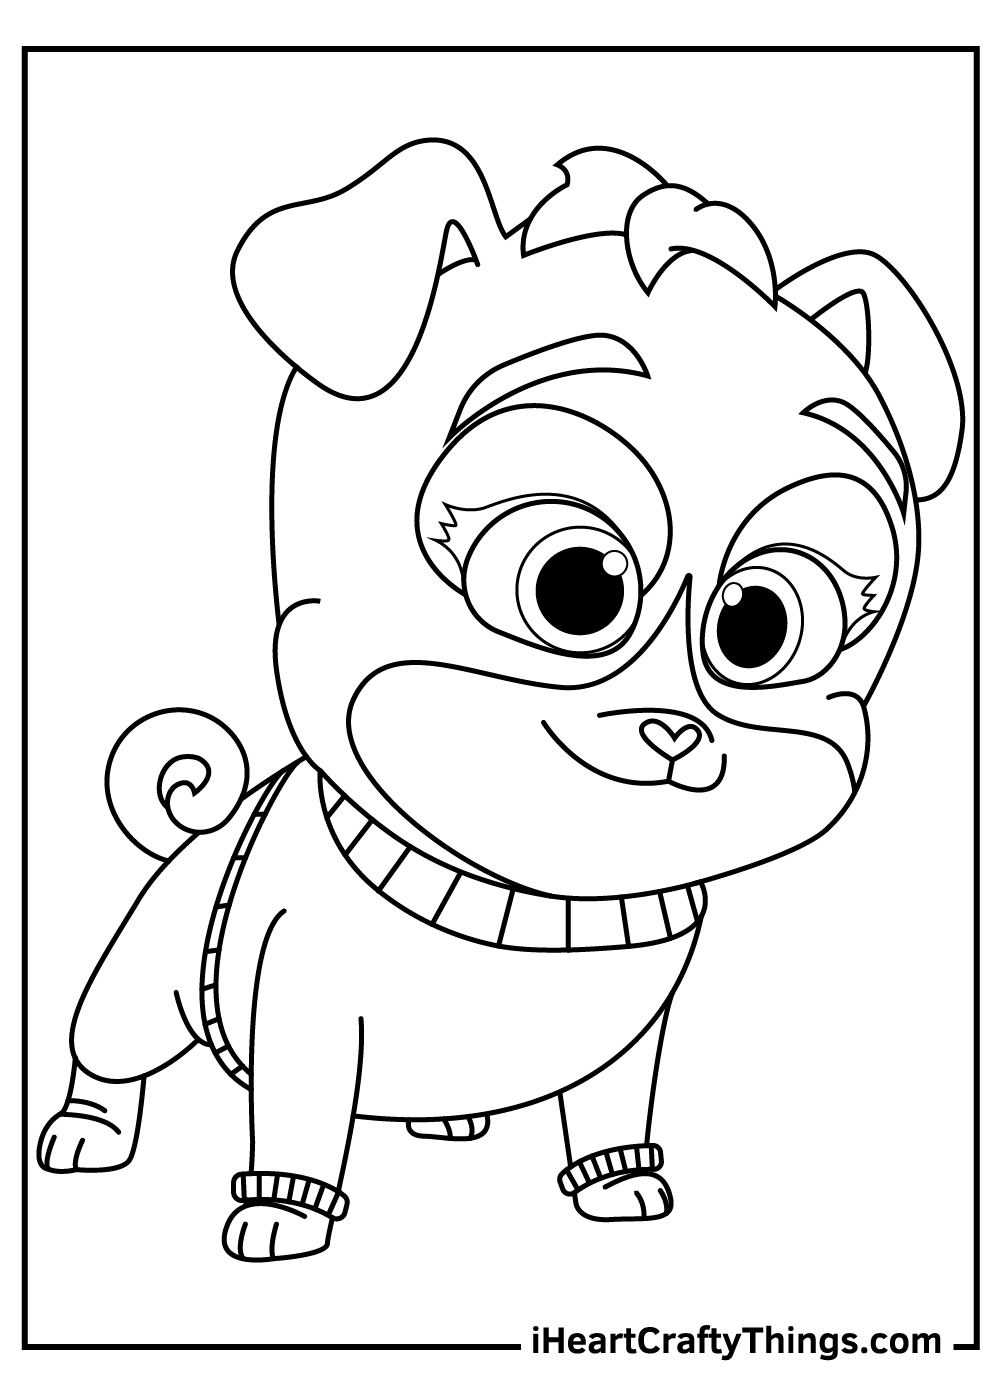 puppy dog pals coloring pages arf free download